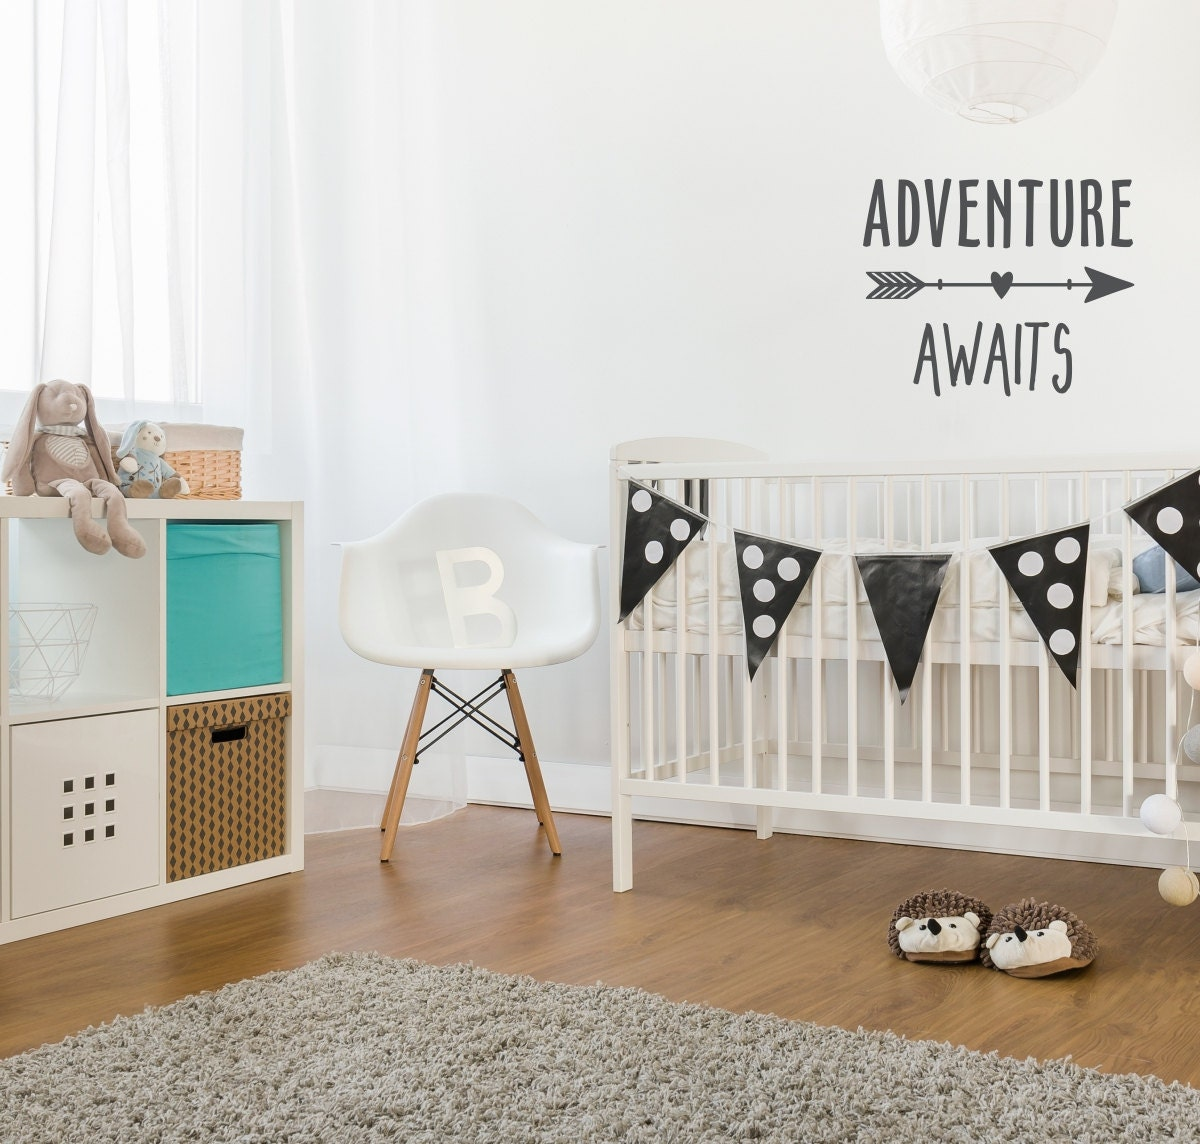 Life Is An Adventure Wall Decal Adventure Awaits Wall Decal